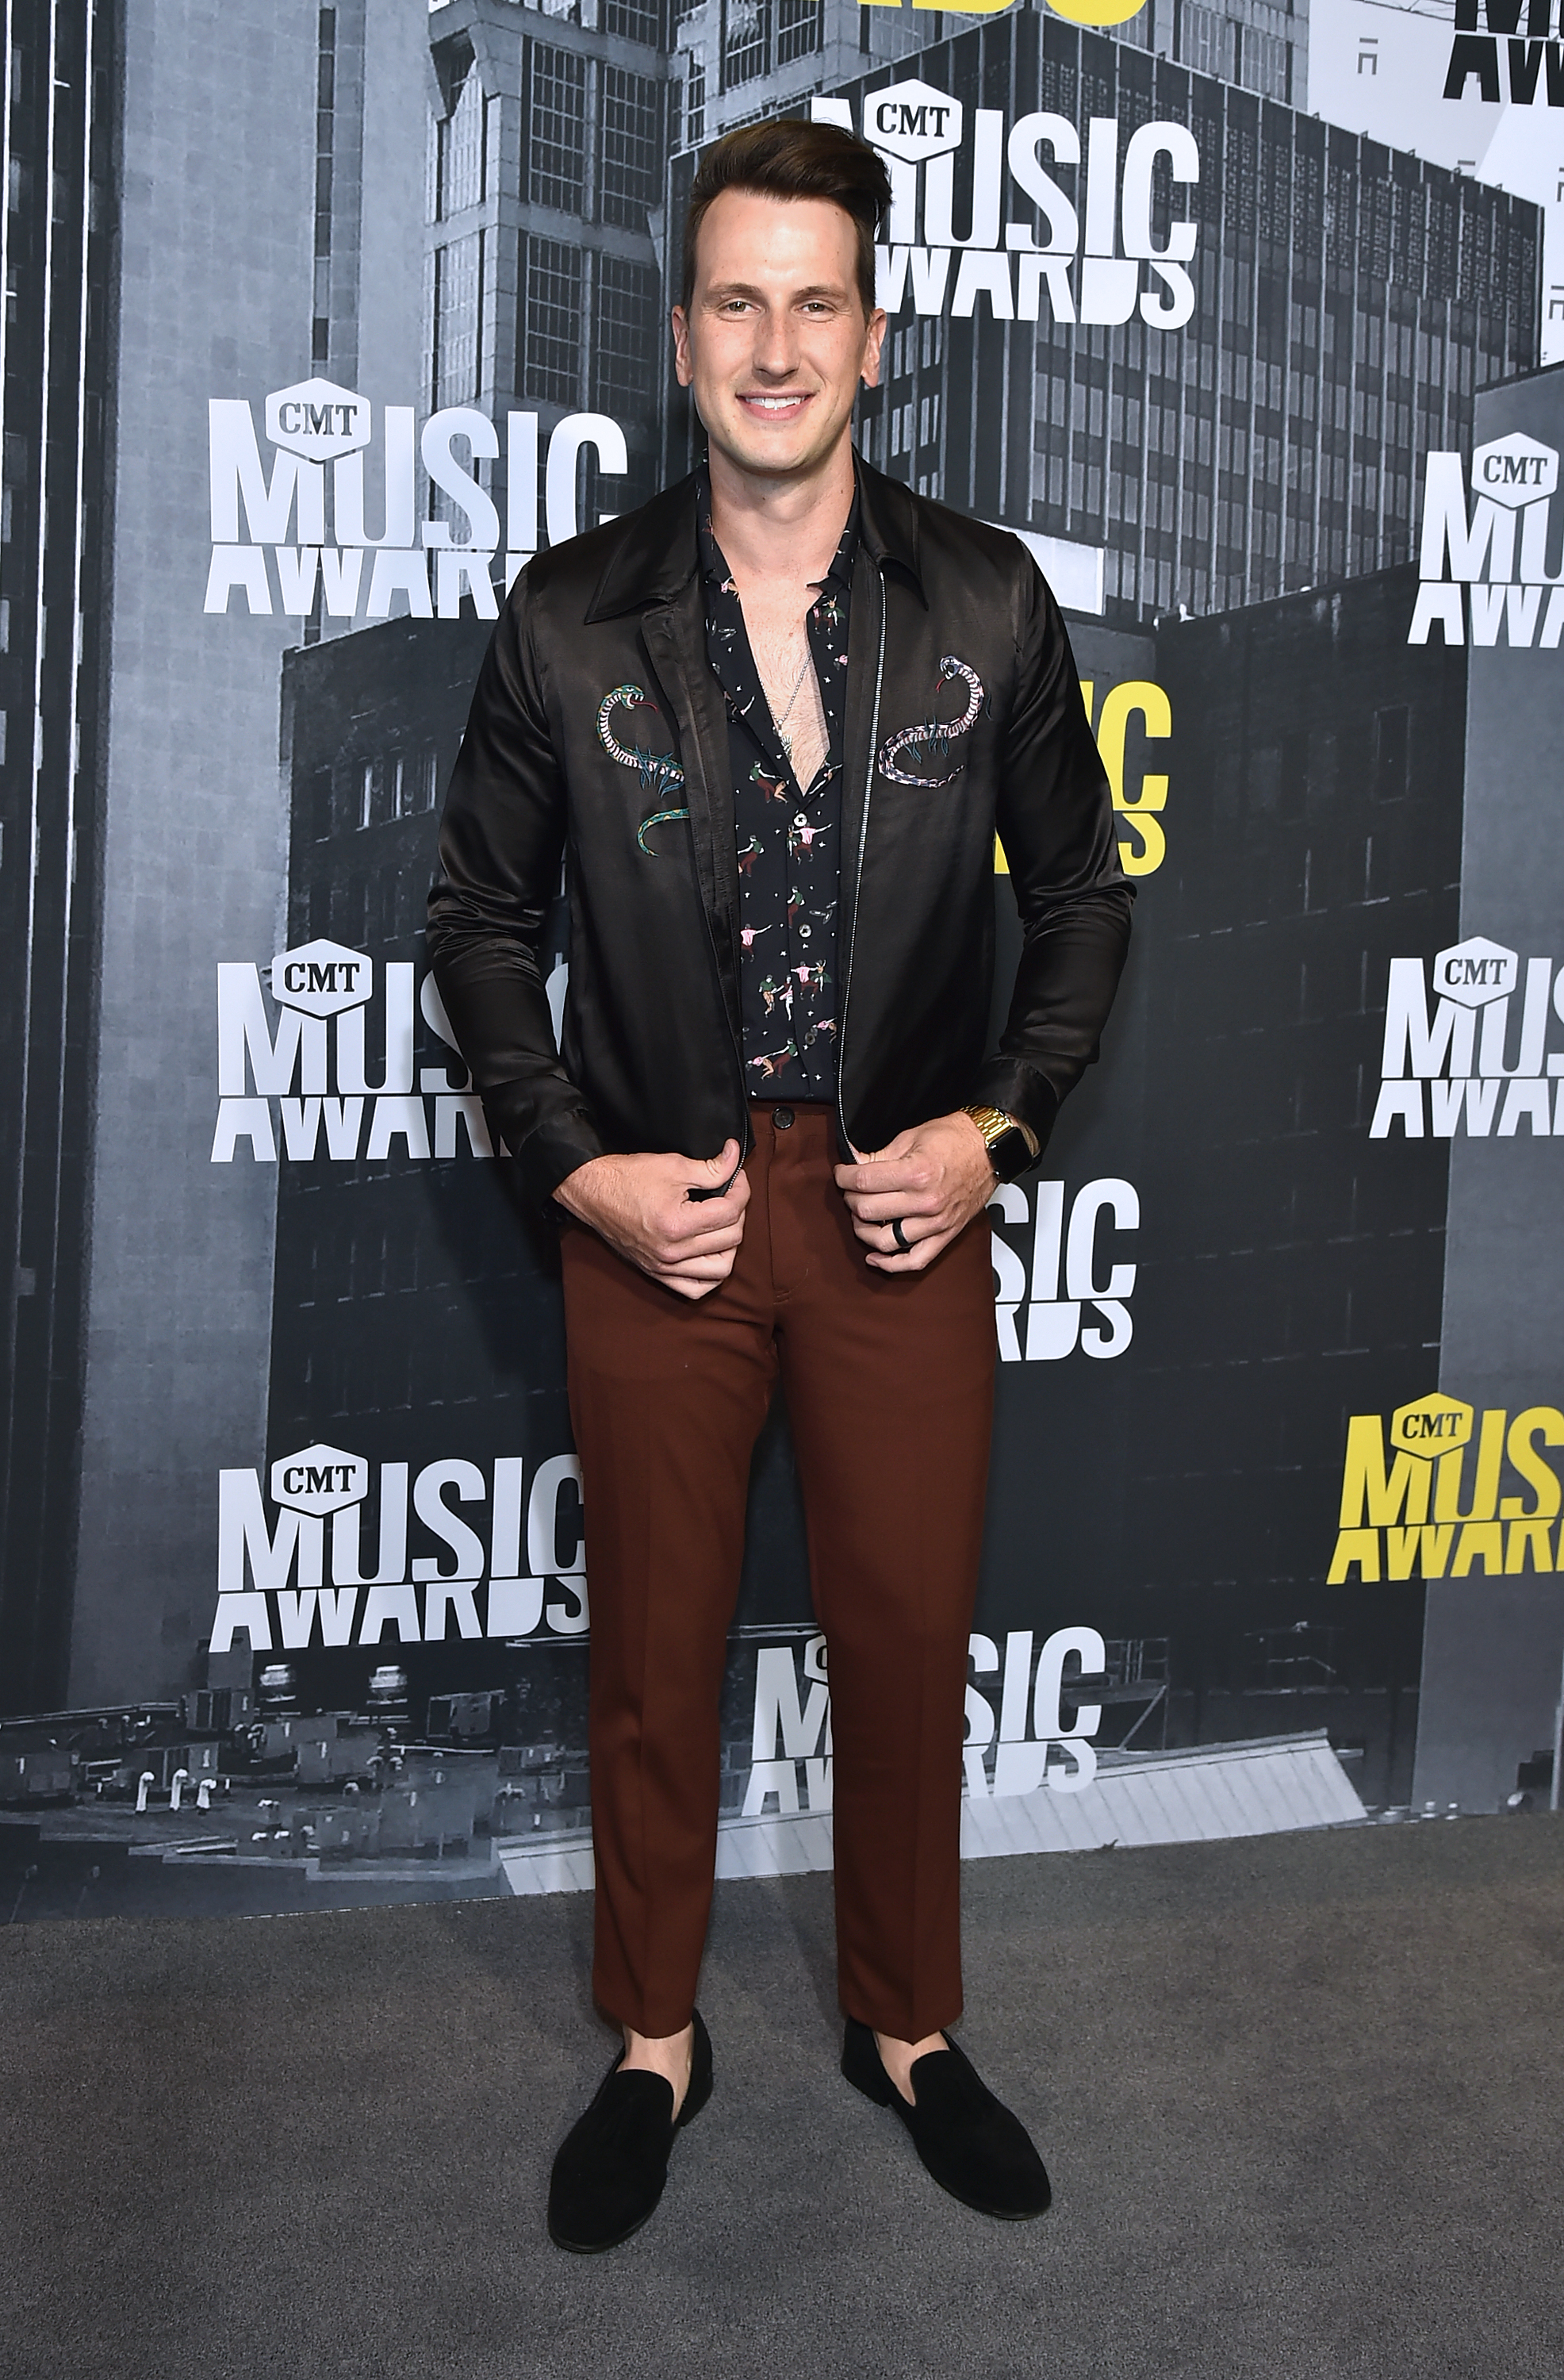 Russell Dickerson; Photo by Mike Coppola/WireImage